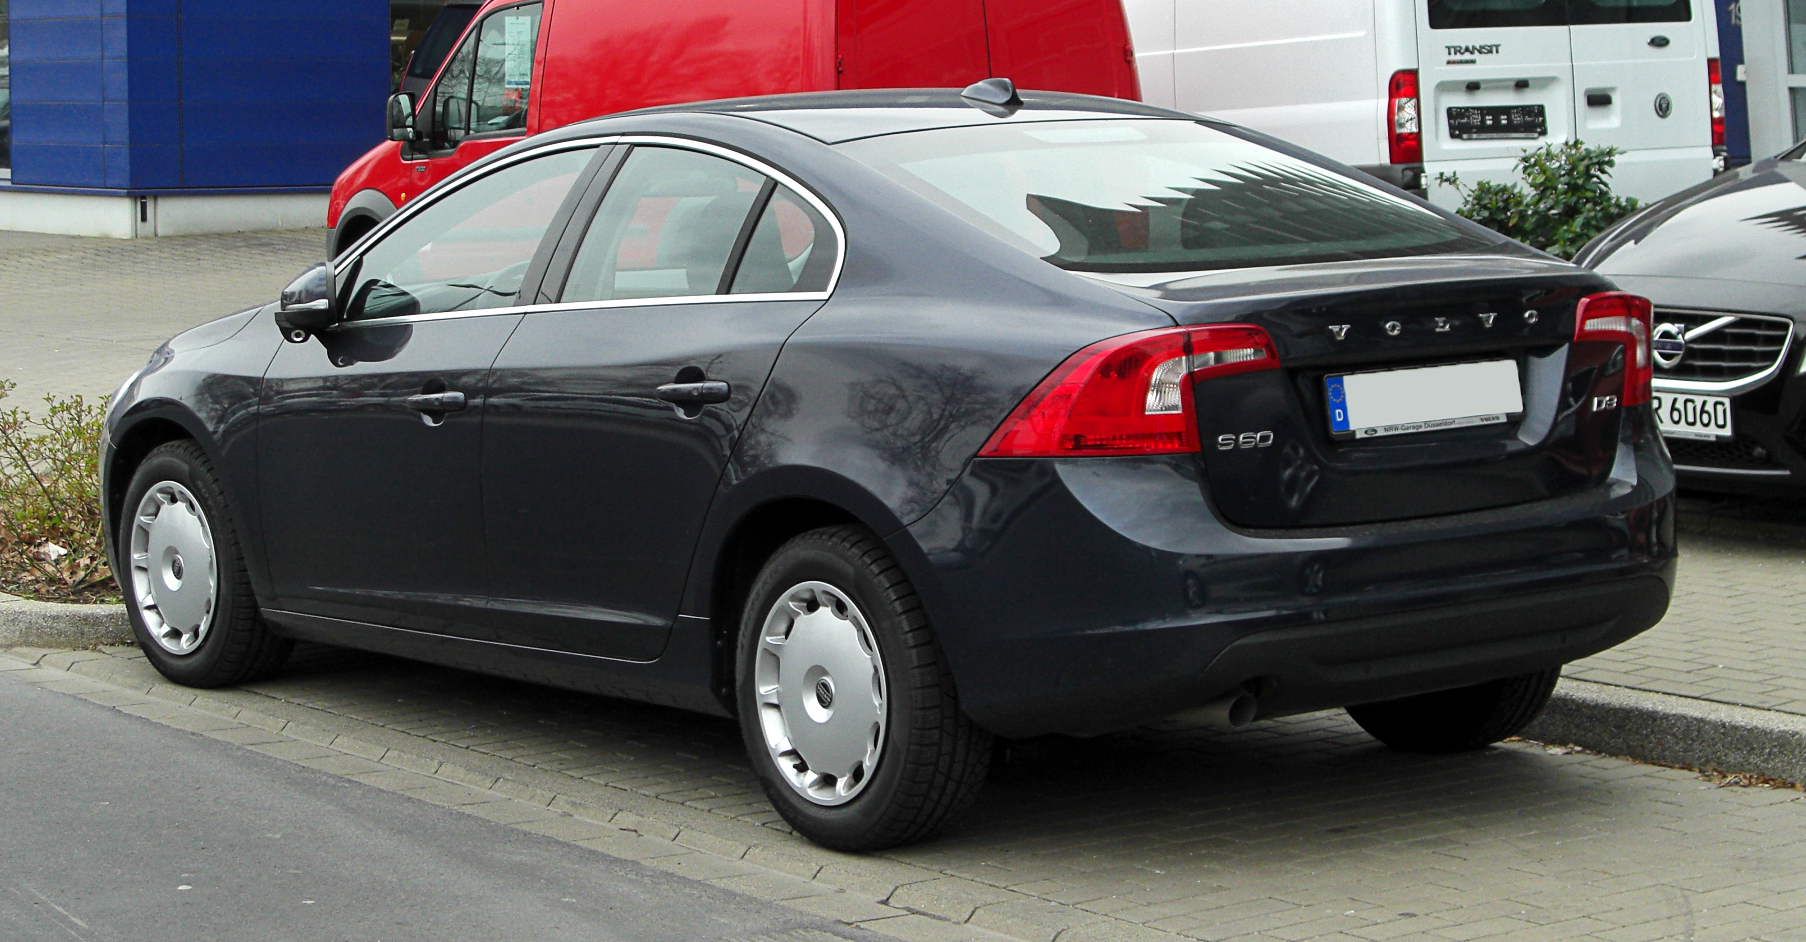 file volvo s60 d3 summum ii heckansicht 26 m rz 2011 d wikimedia commons. Black Bedroom Furniture Sets. Home Design Ideas